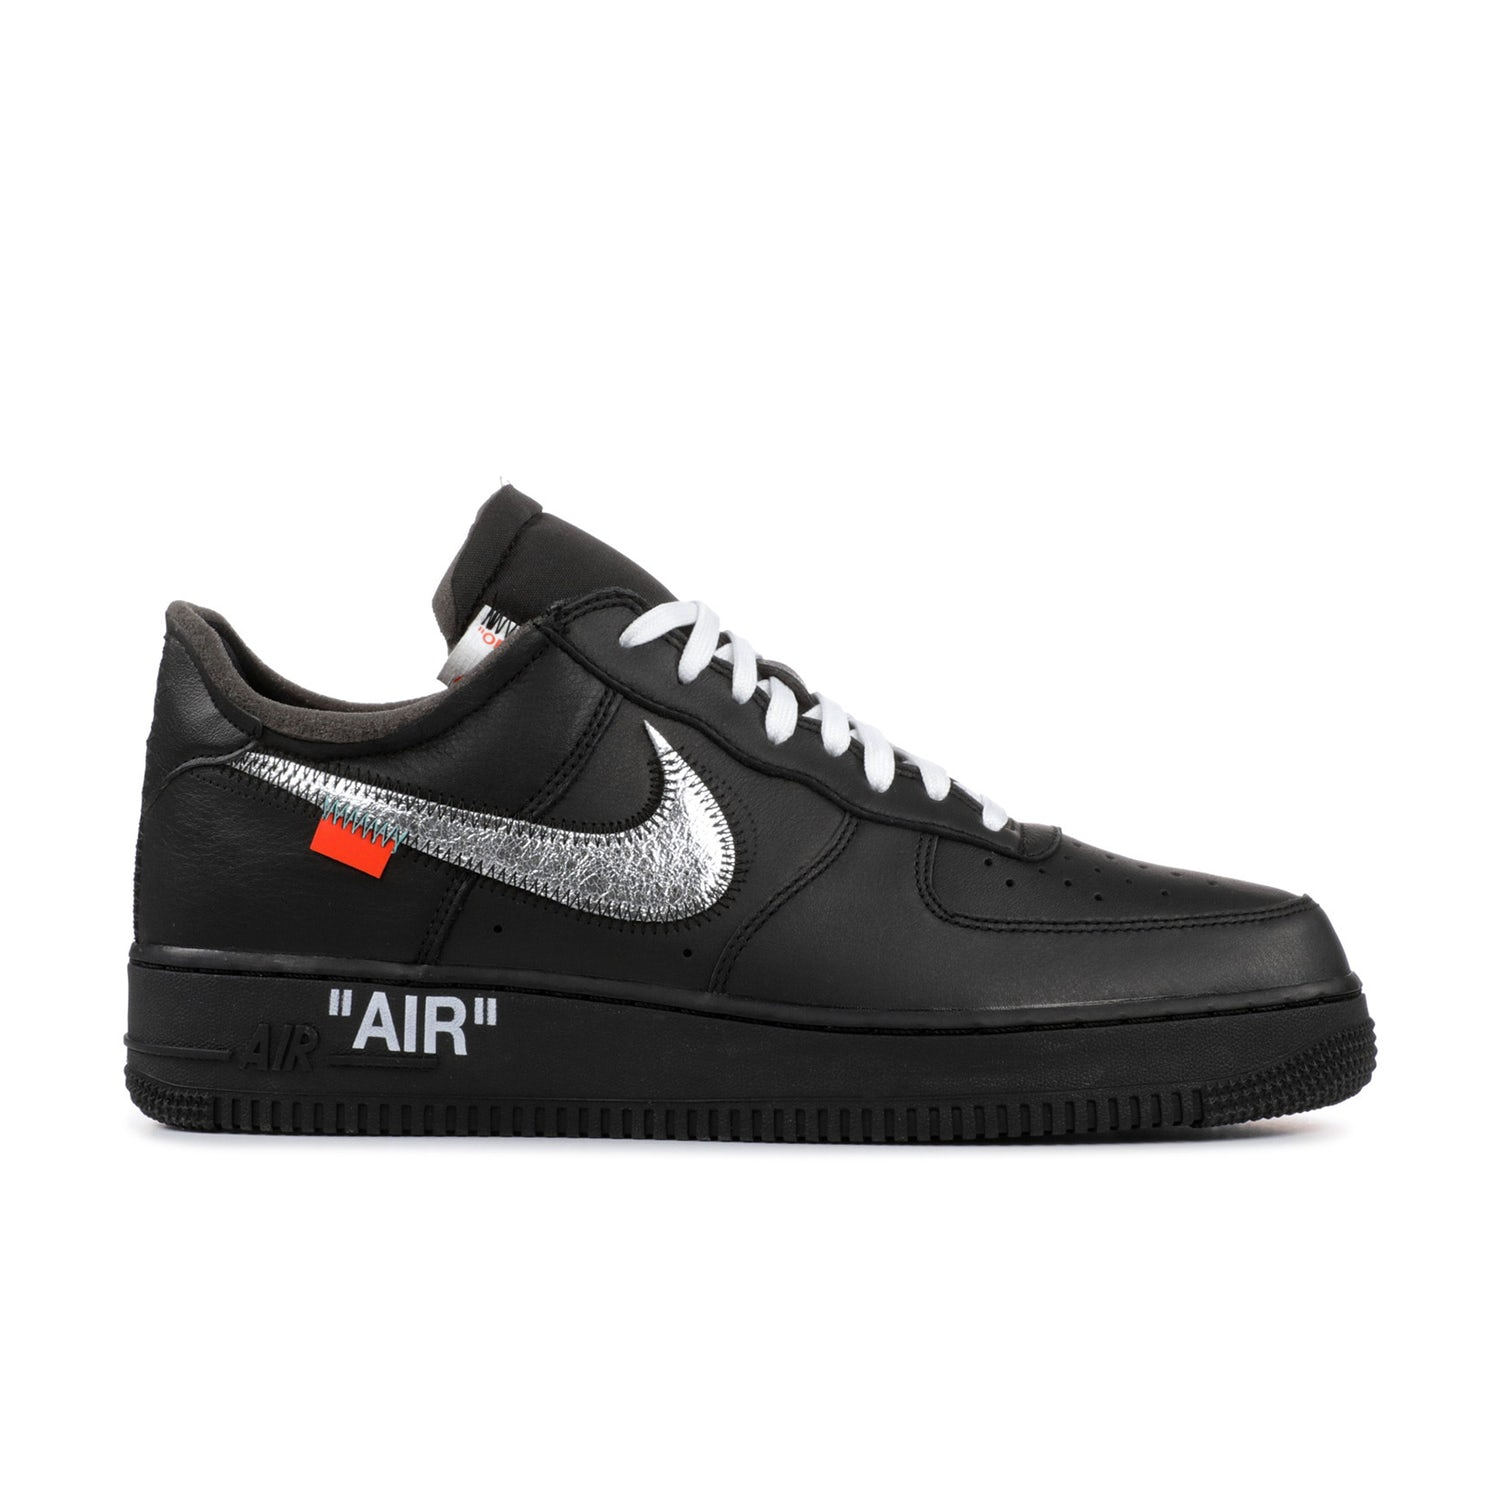 Air Force 1 Low MoMa Off White